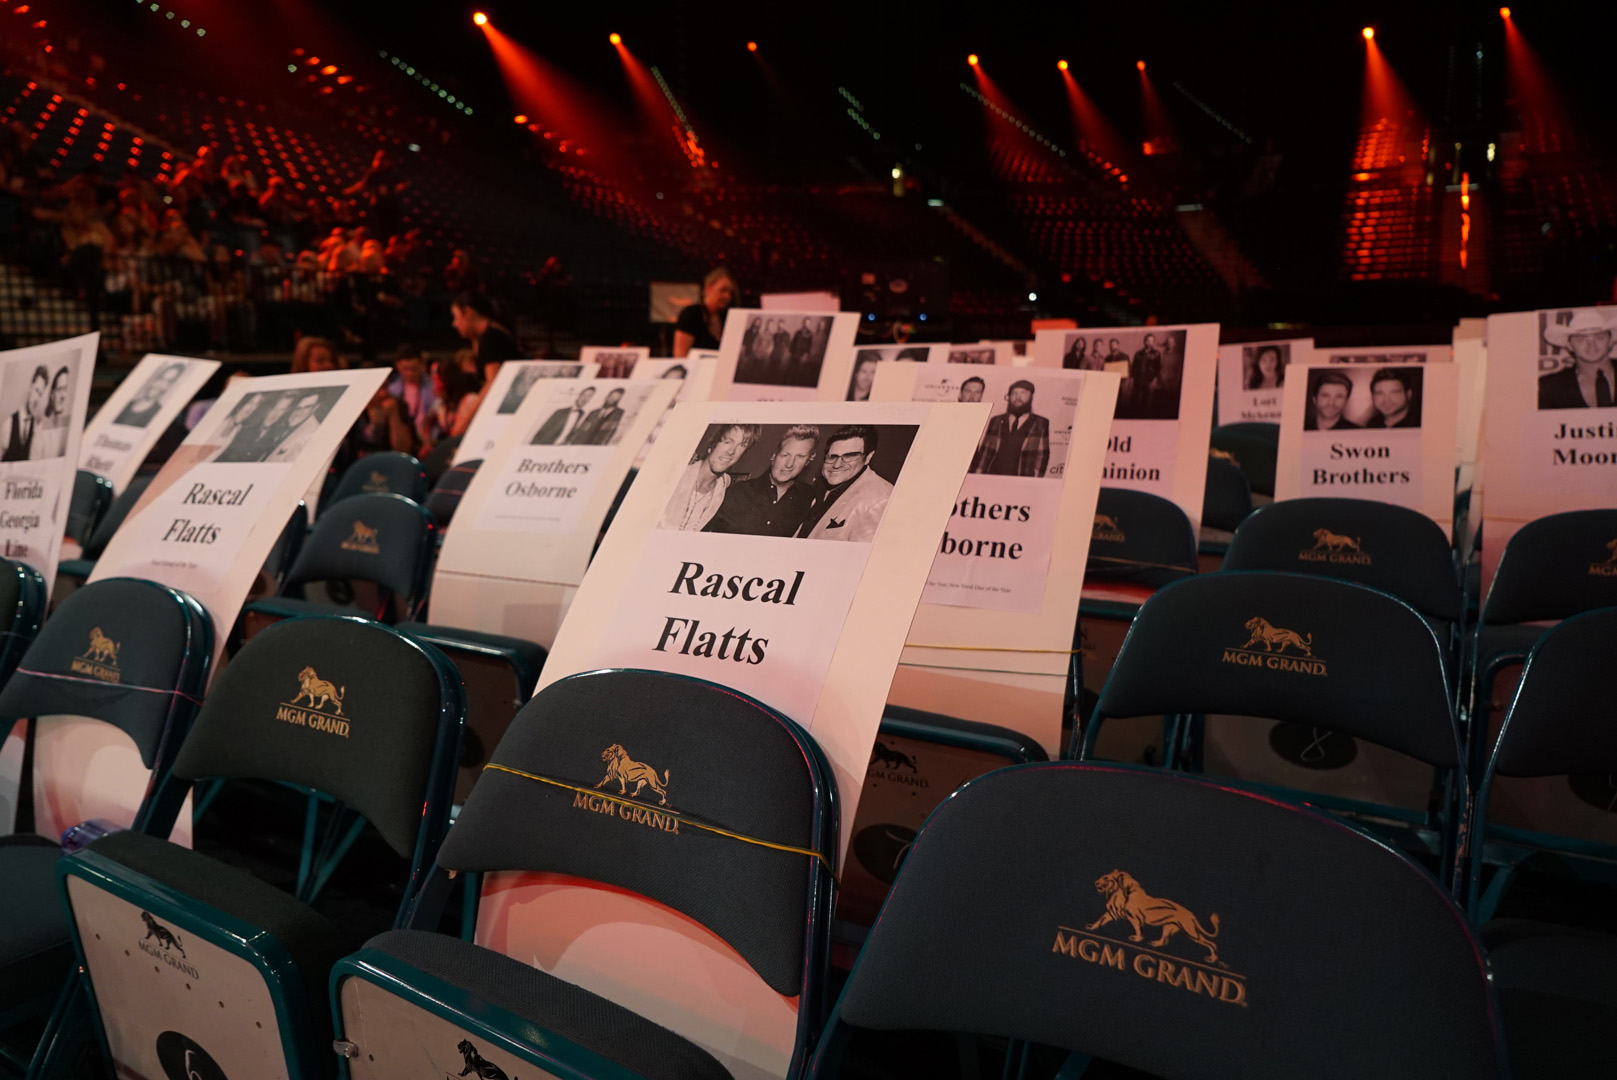 Rascal Flatts has a great spot saved for this year's ACM Awards.